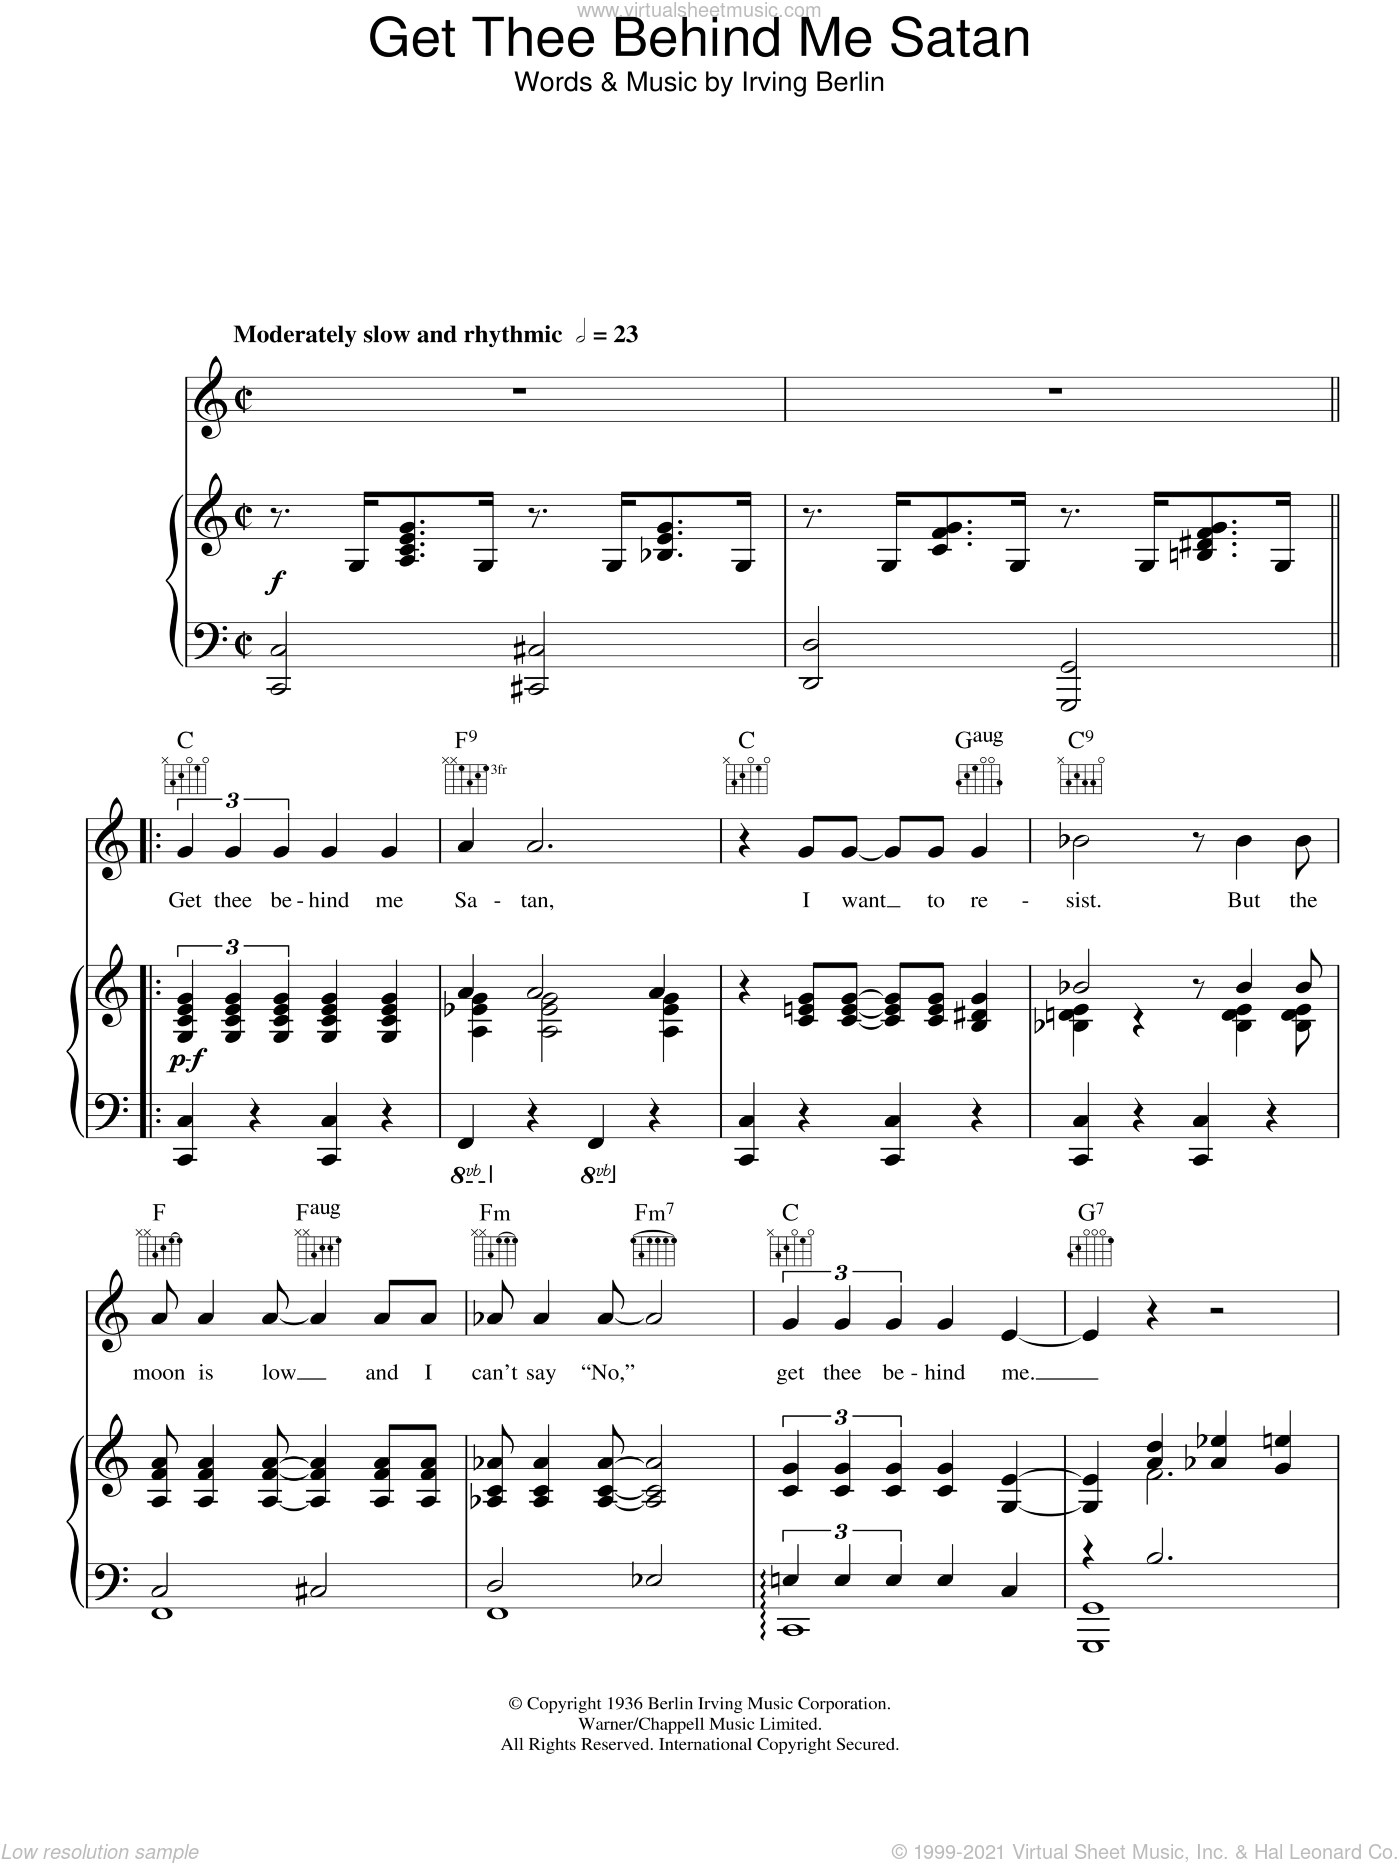 Get Thee Behind Me Satan sheet music for voice, piano or guitar by Irving Berlin. Score Image Preview.